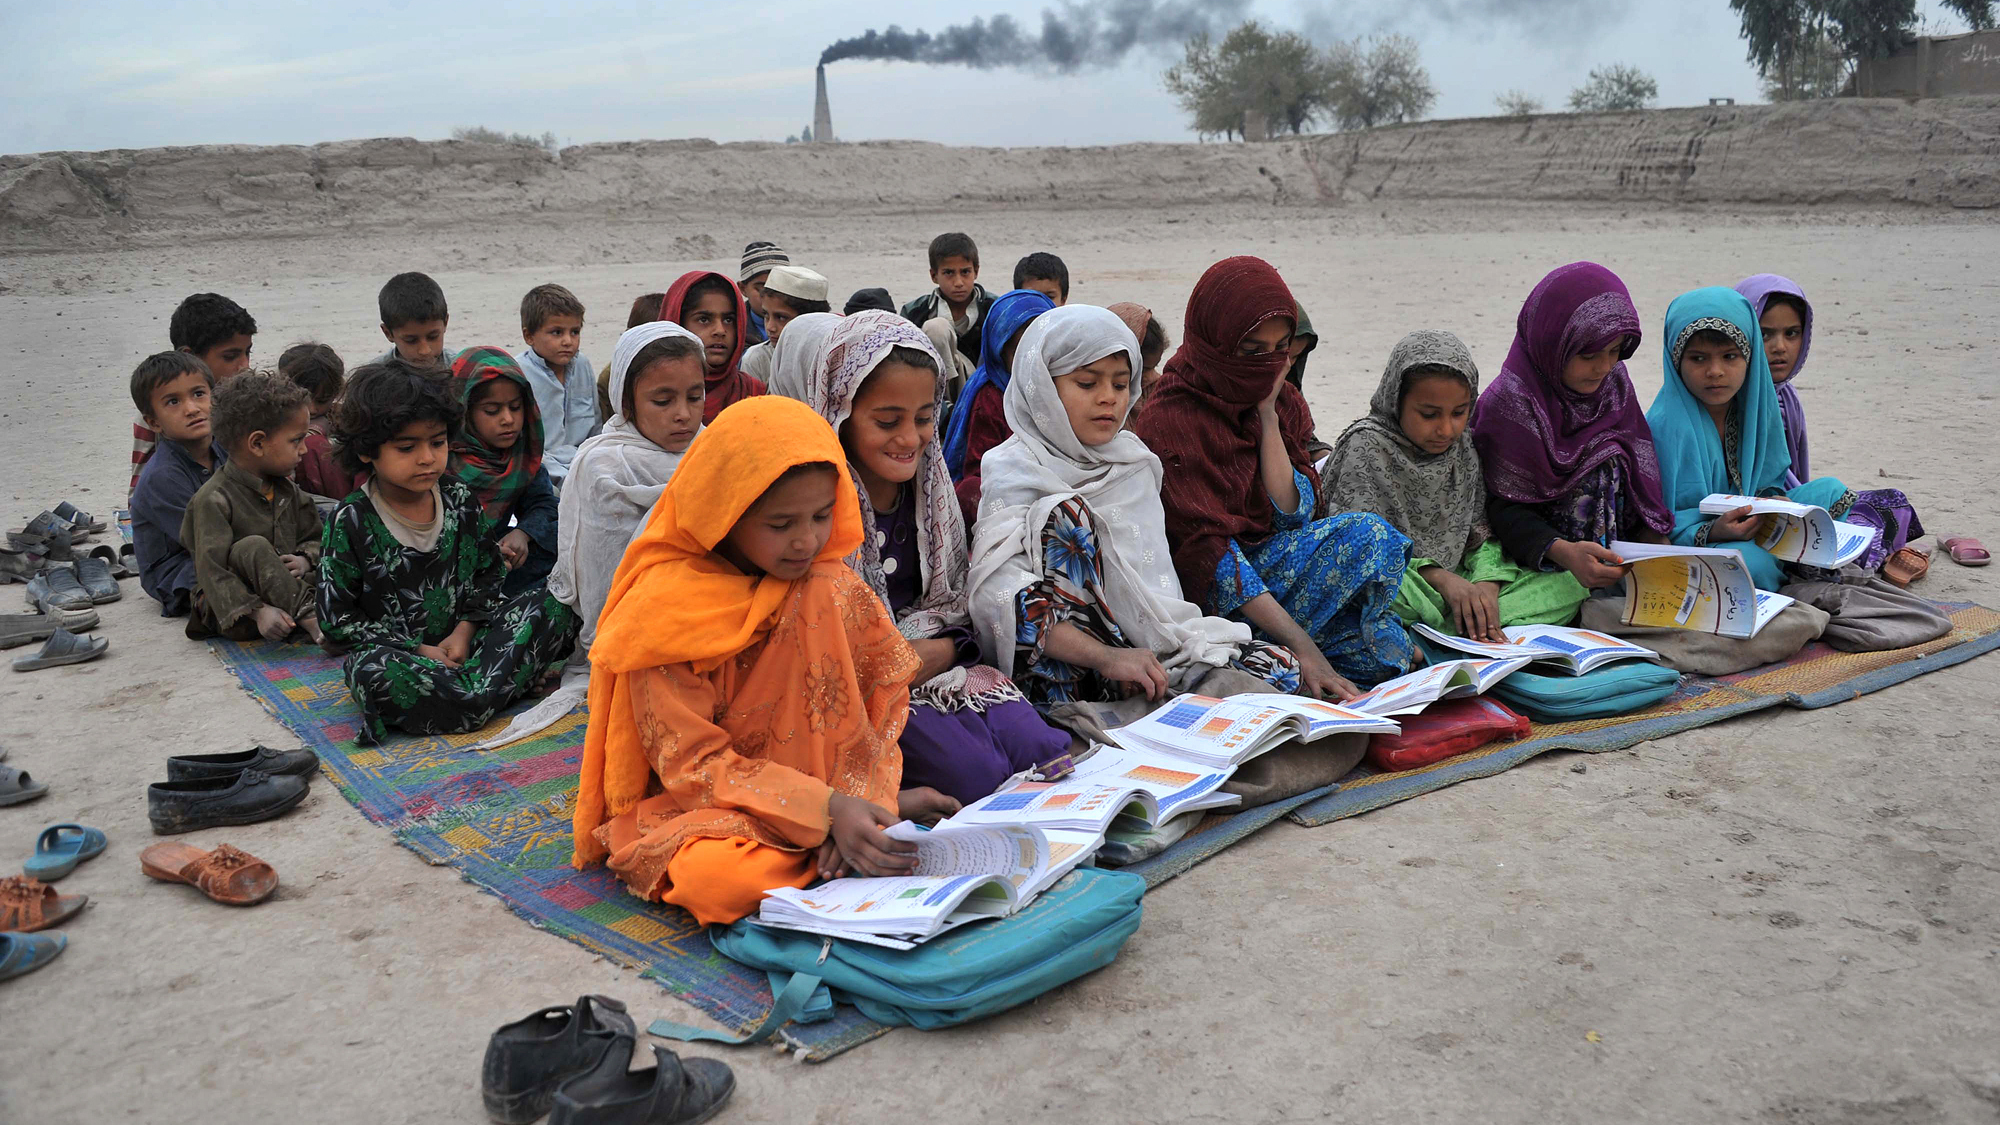 20,000 Pakistani children in the UAE go without an education